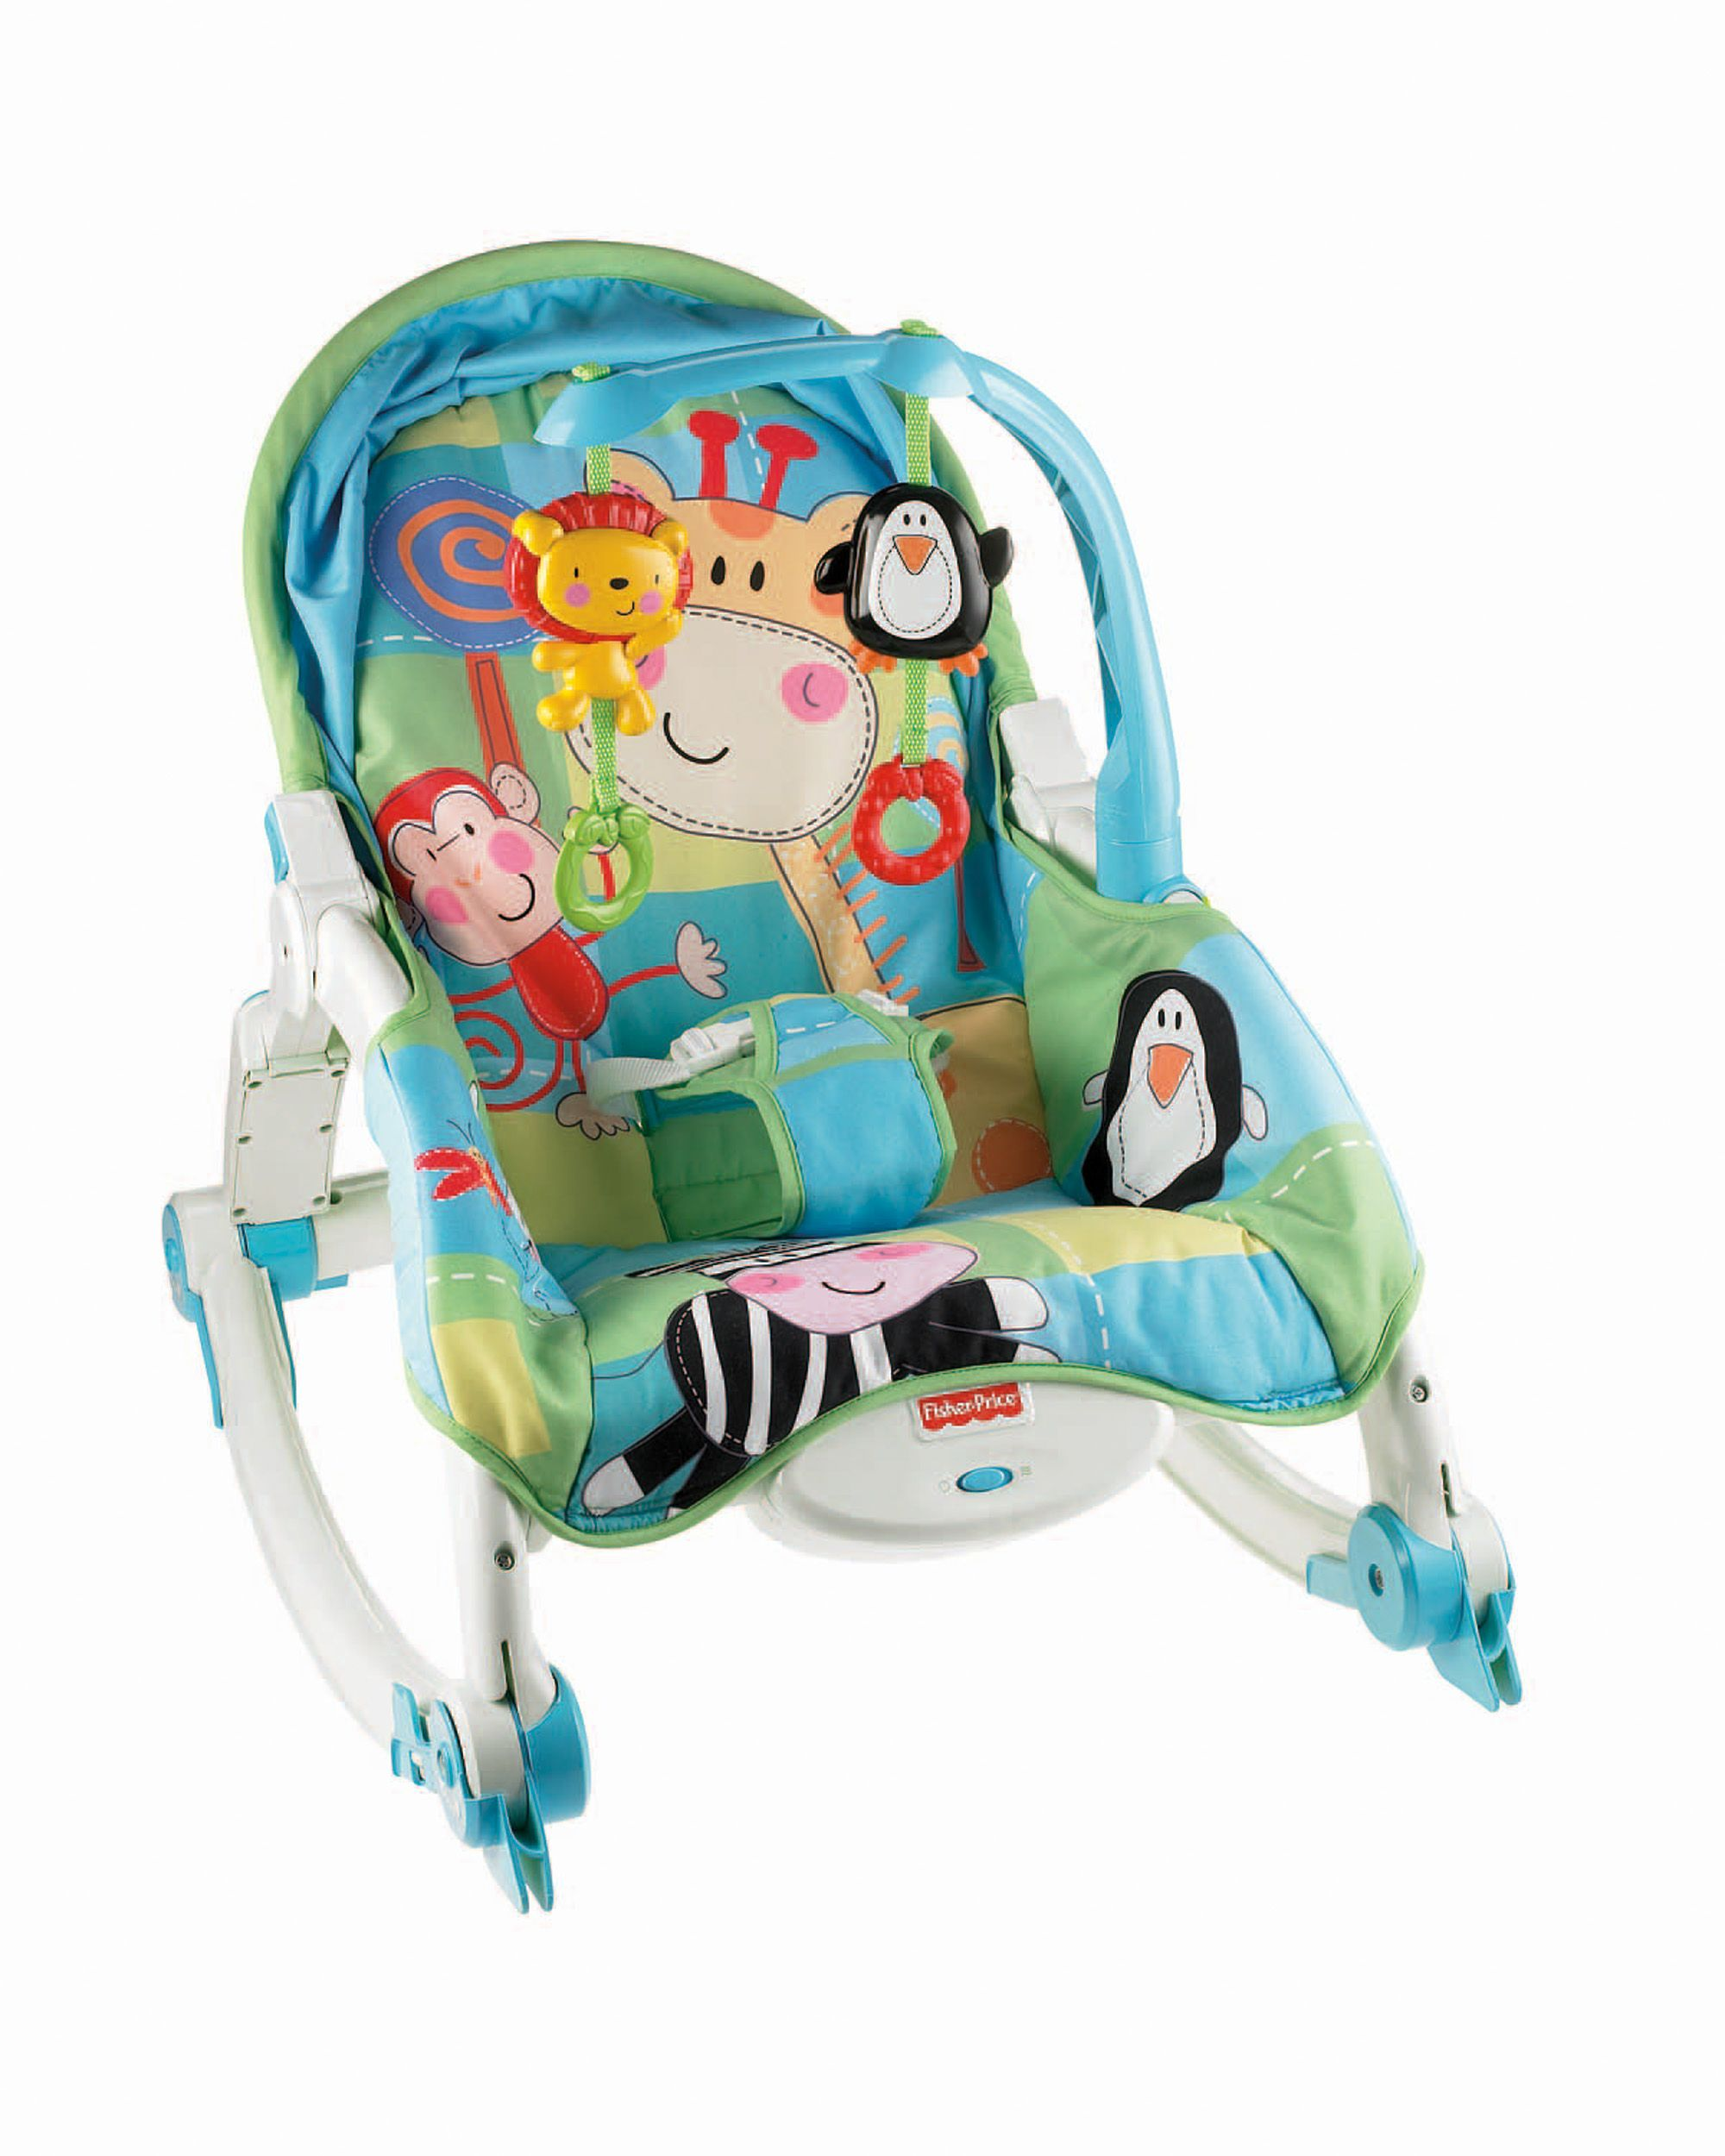 Baby rocker chair fisher price - Fisher Price Discover And Grow Newborn To Toddler Rocker Available Online At Http Baby Bouncerfisher